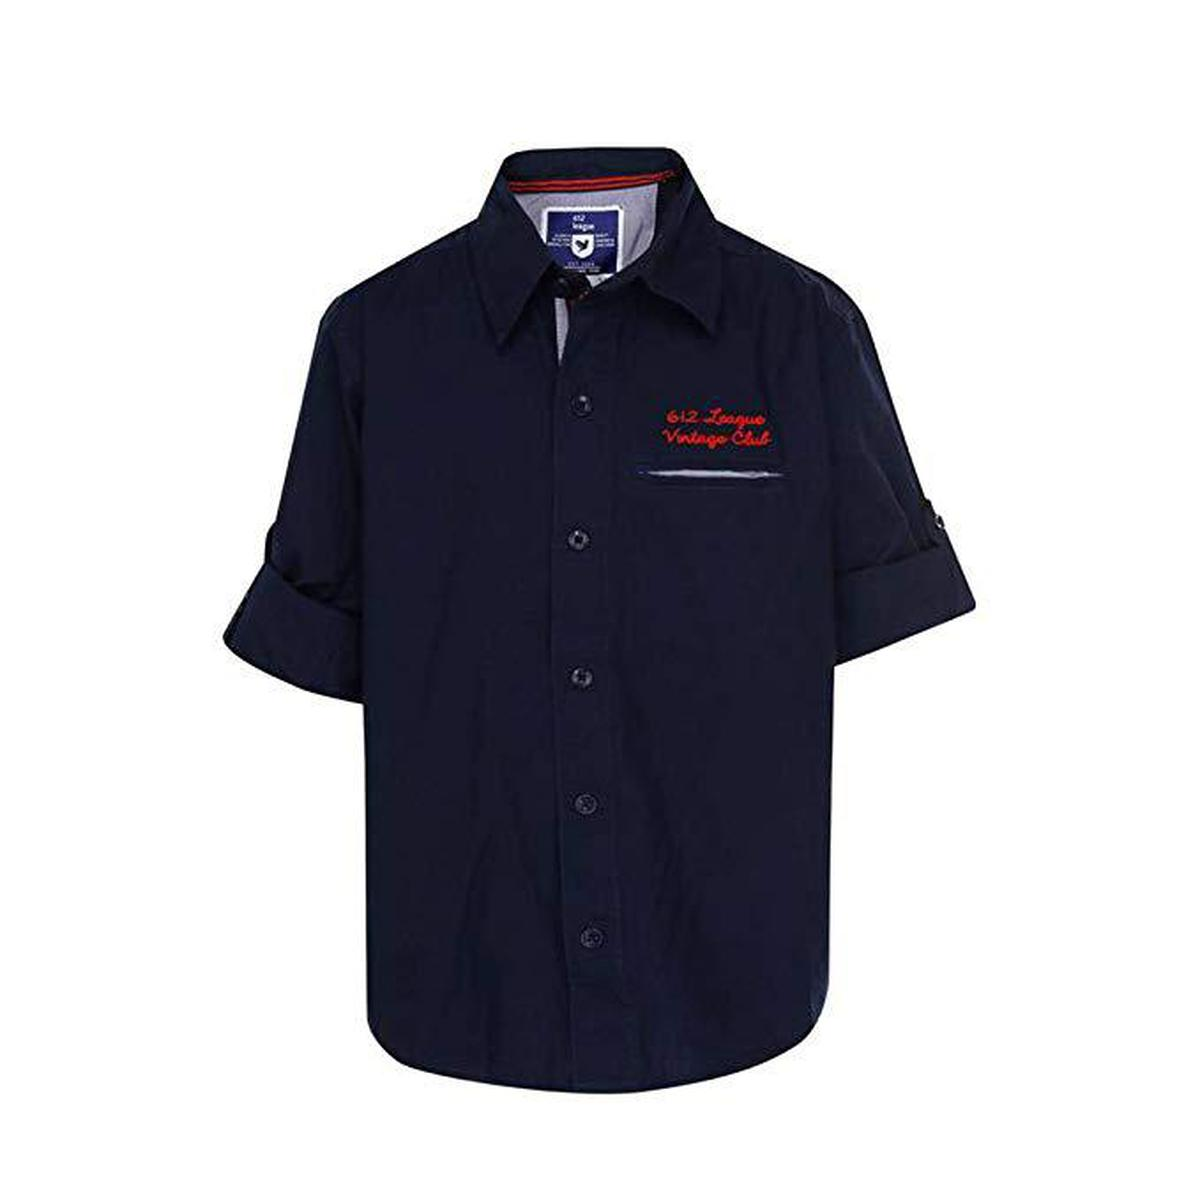 612 League - Navy Colored Solid F/S With Emb Shirts For Boys